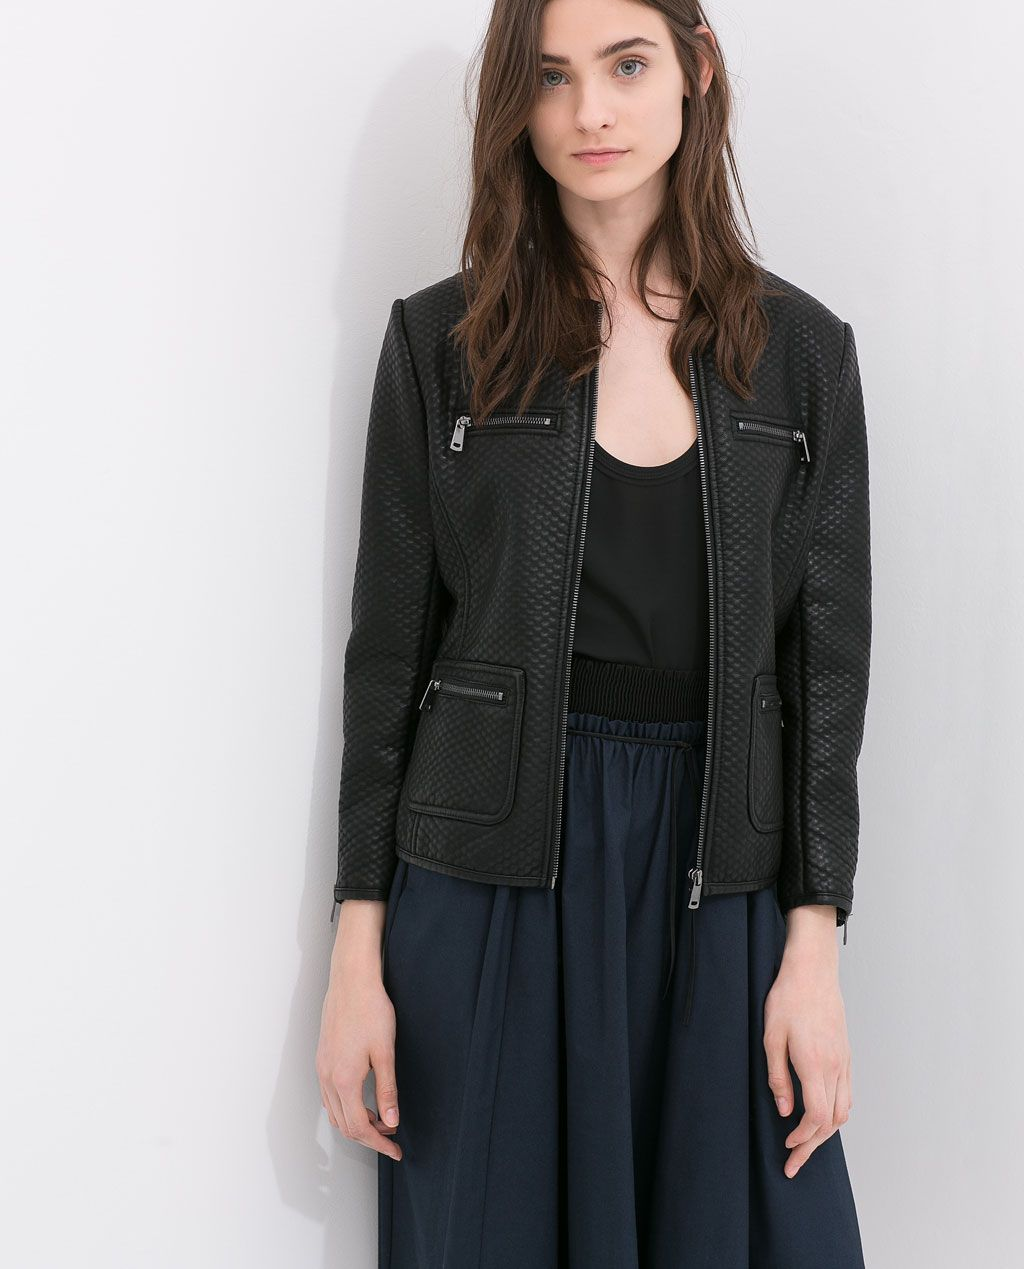 FAUX LEATHER JACKET WITH JEWEL COLLAR from Zara Black